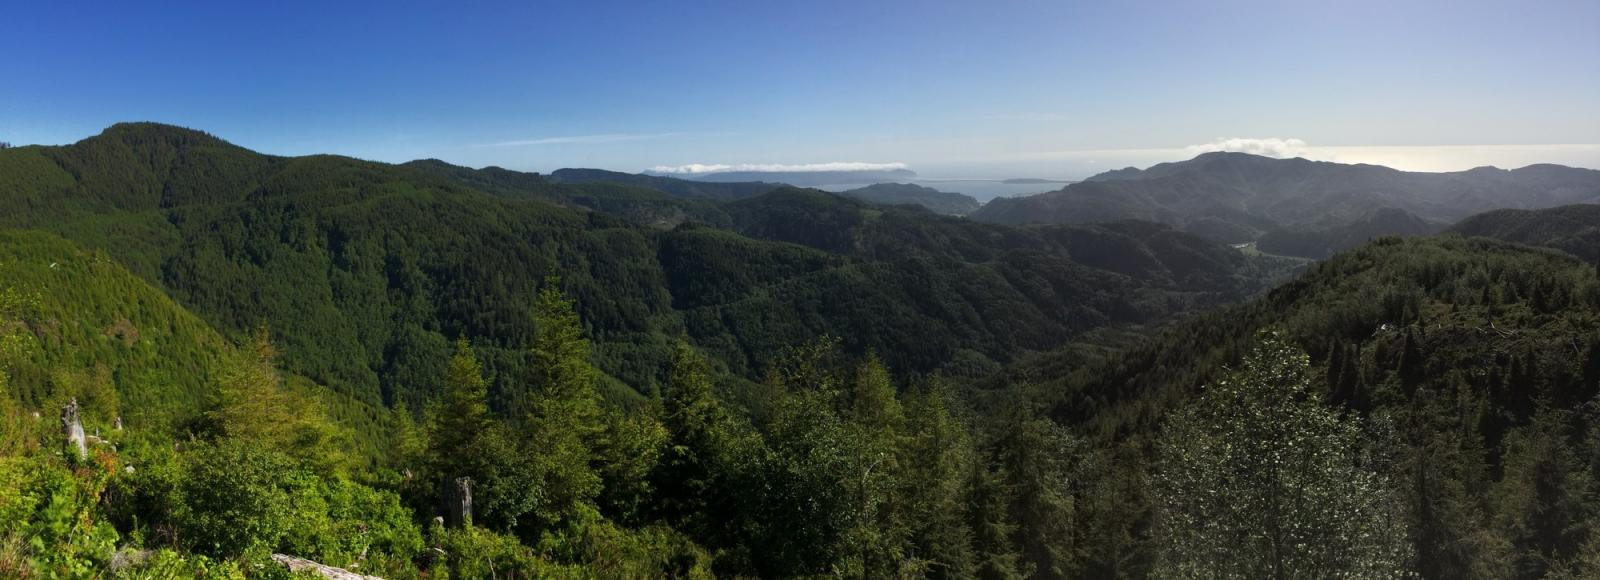 Panorama of coastal forest, sea in background.